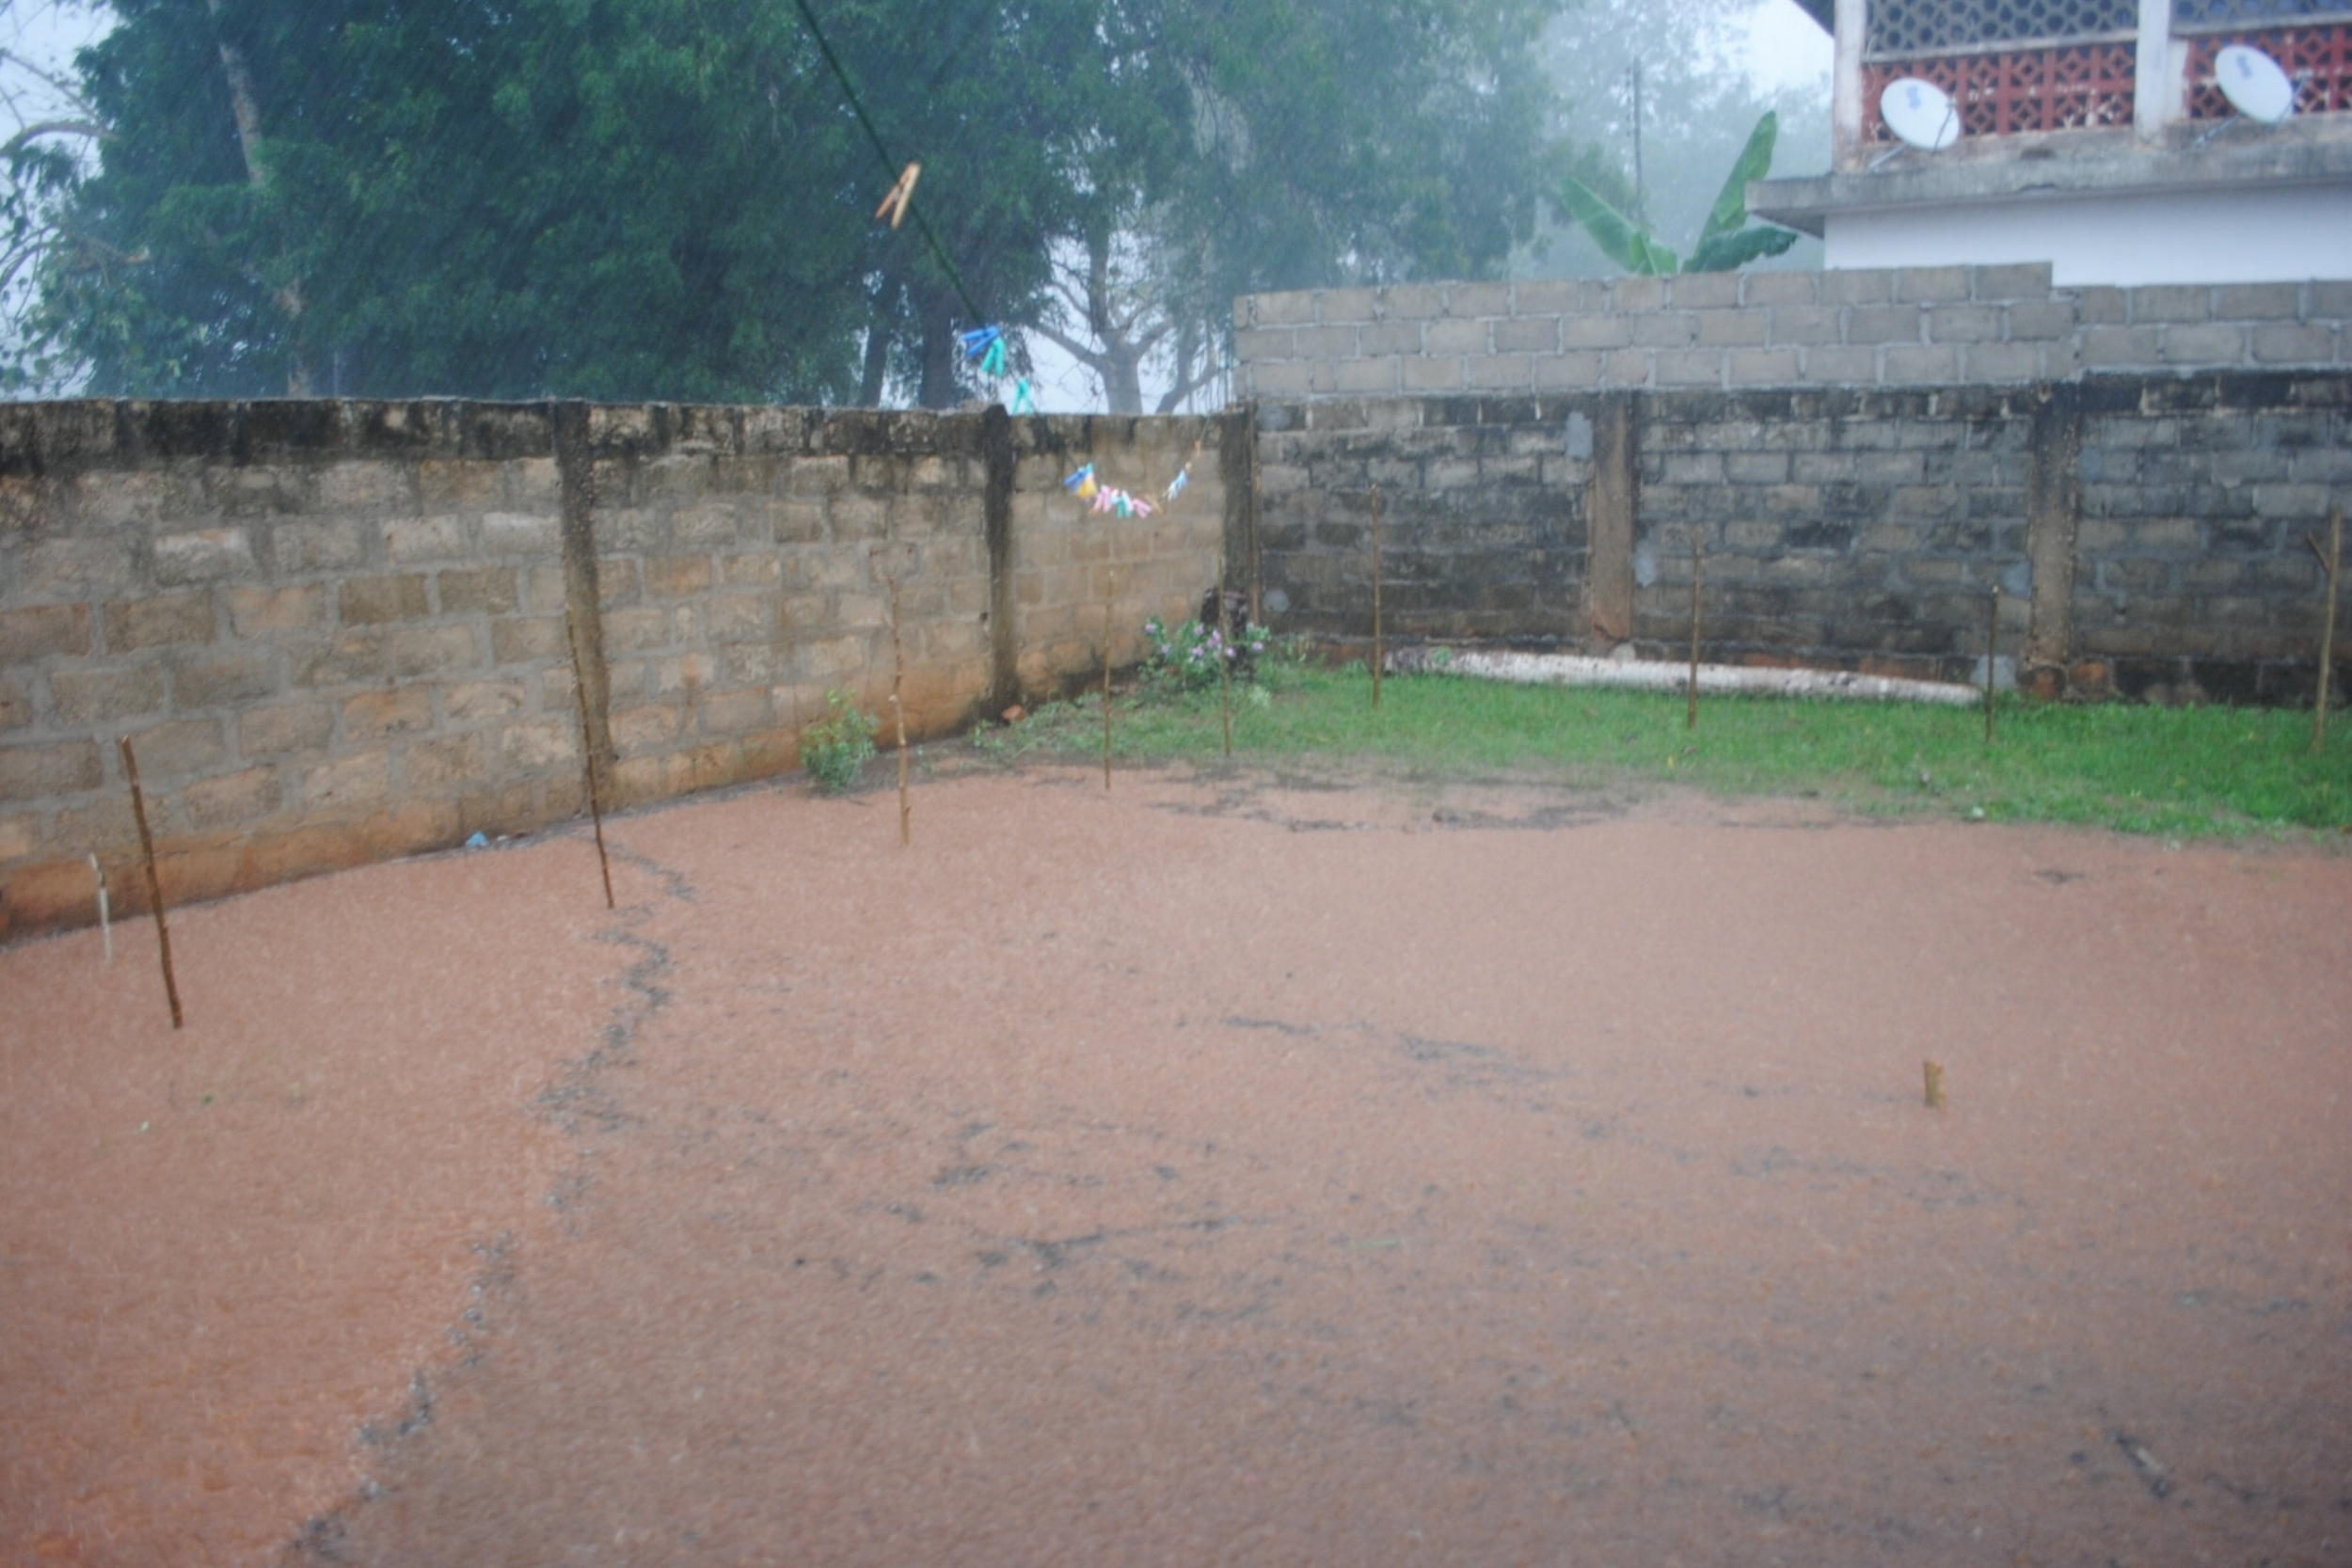 Nothing like a Ghana thunderstorm. Look at how tiny the Moringa trees are!